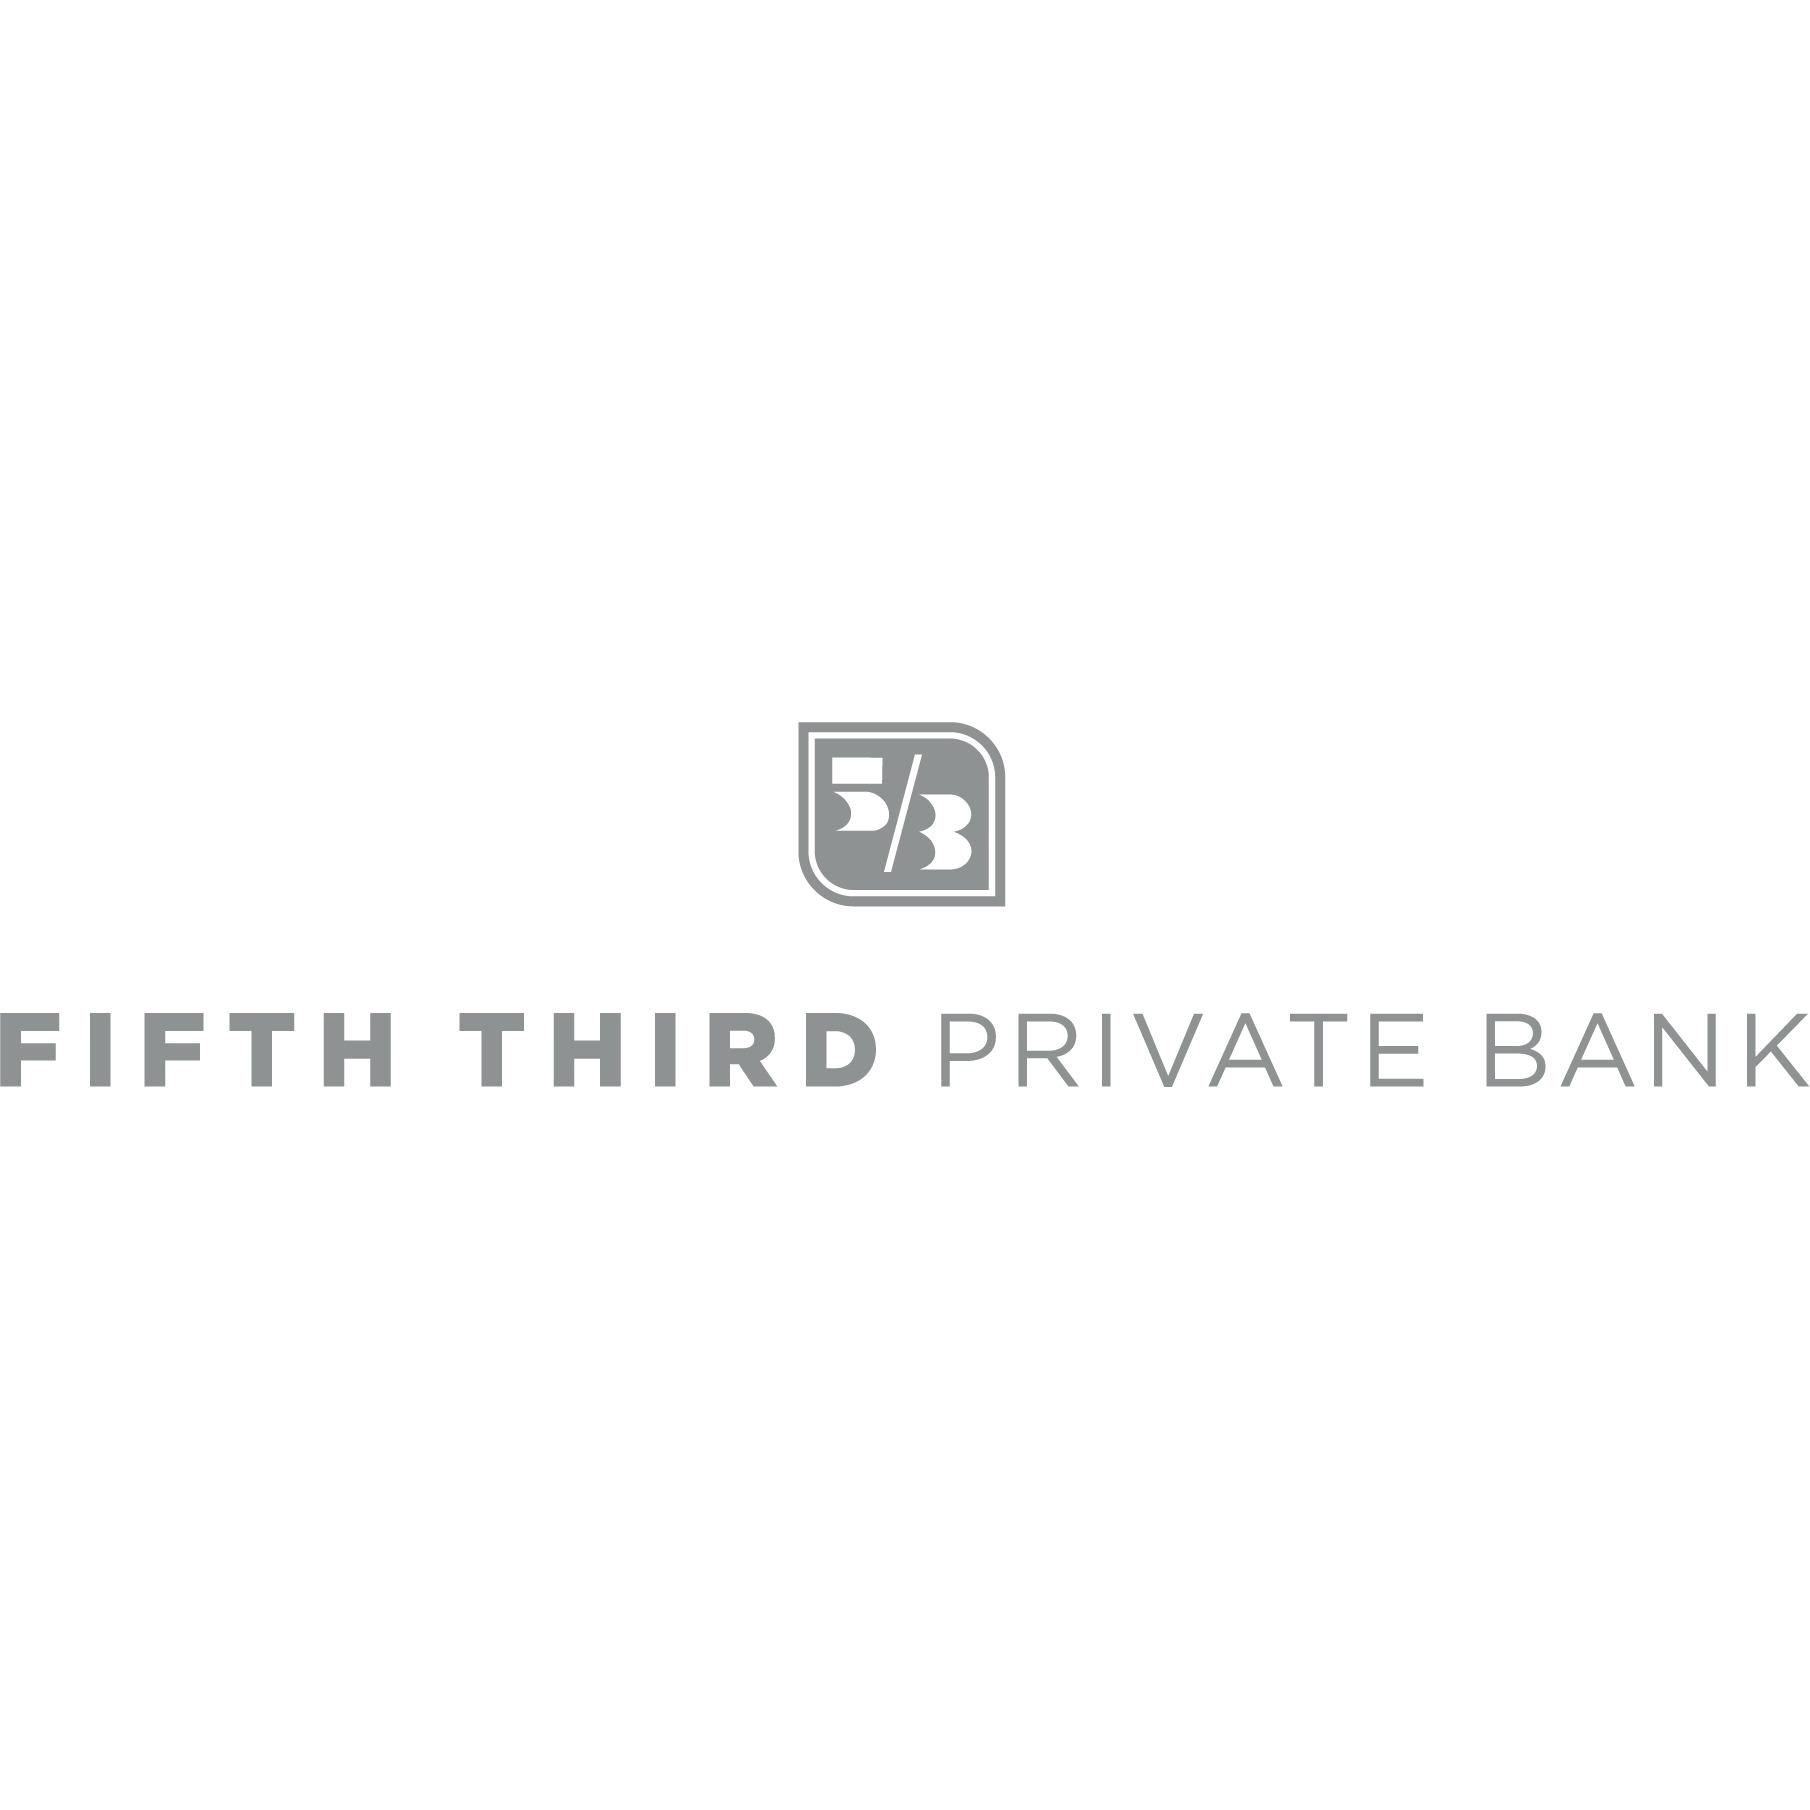 Fifth Third Private Bank - Robert Swieterman